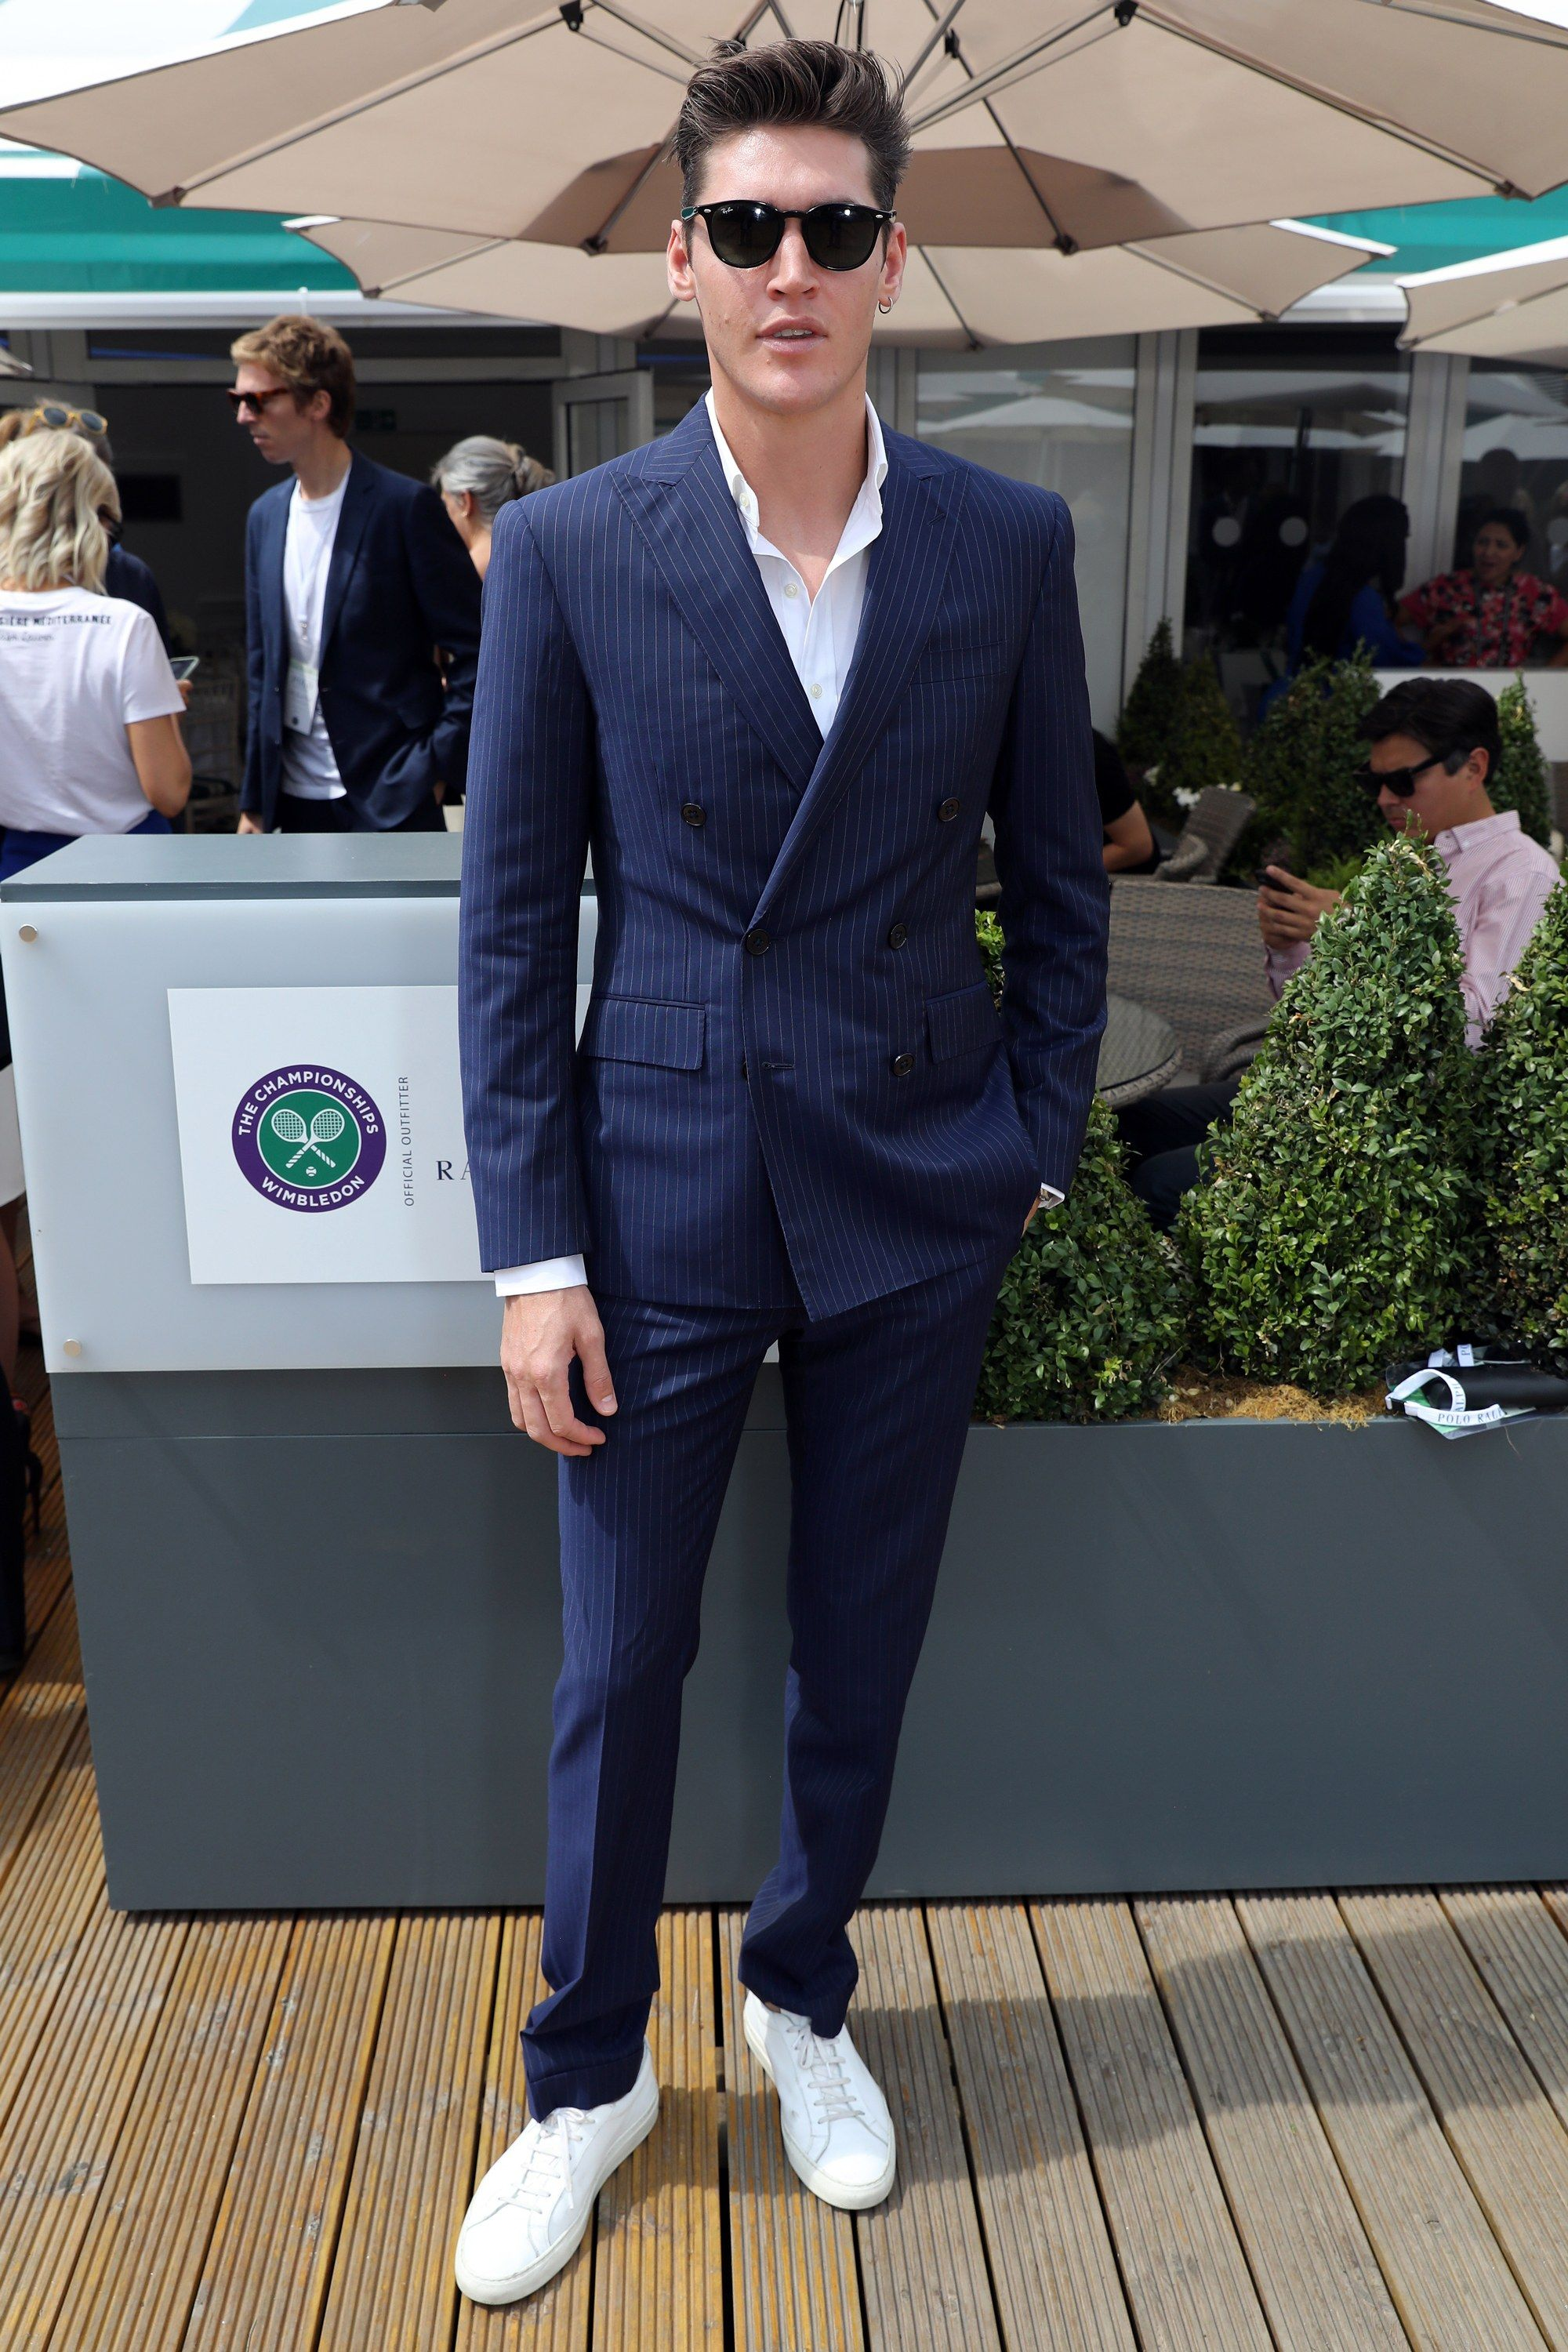 2a7fa8e73351 The Best Men's Style from Wimbledon 2018 | Sartorial Delights ...